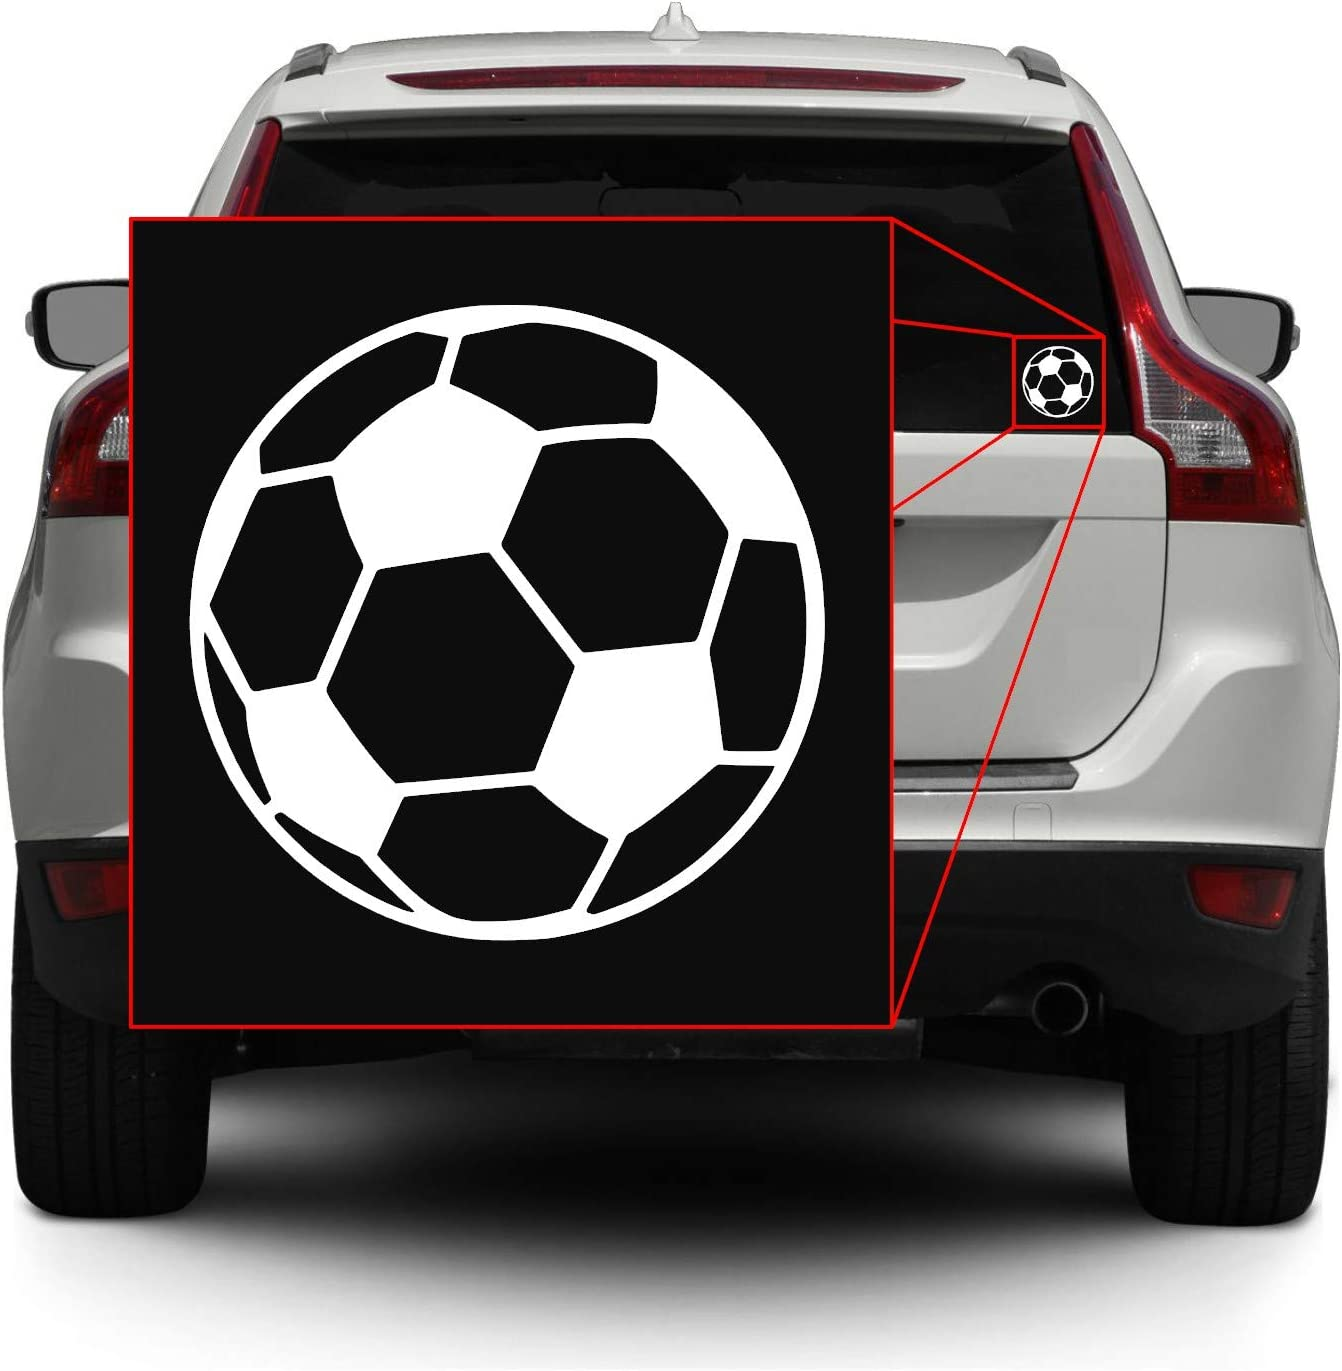 Vinyl Transfer Sticker Decal for Laptop//Car//Truck//Window//Bumper Soccer Ball Pick Any Color 5in x 5in, Black